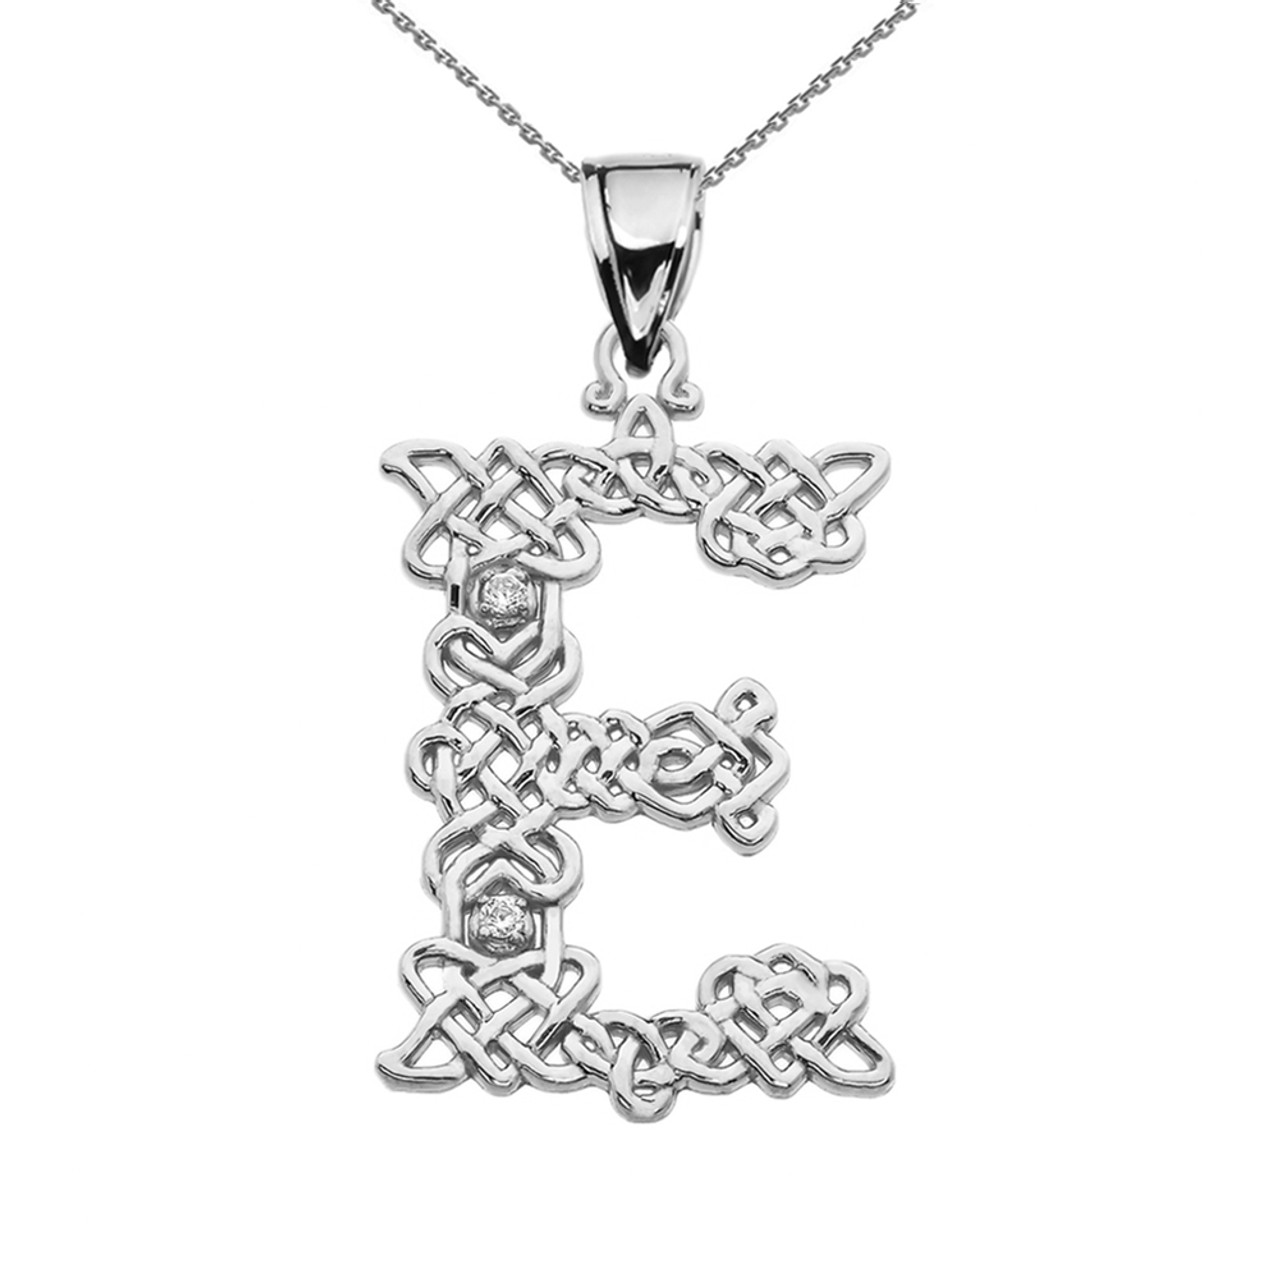 Cz e initial in celtic pattern sterling silver pendant necklace e initial in celtic knot pattern sterling silver pendant necklace with cz aloadofball Image collections